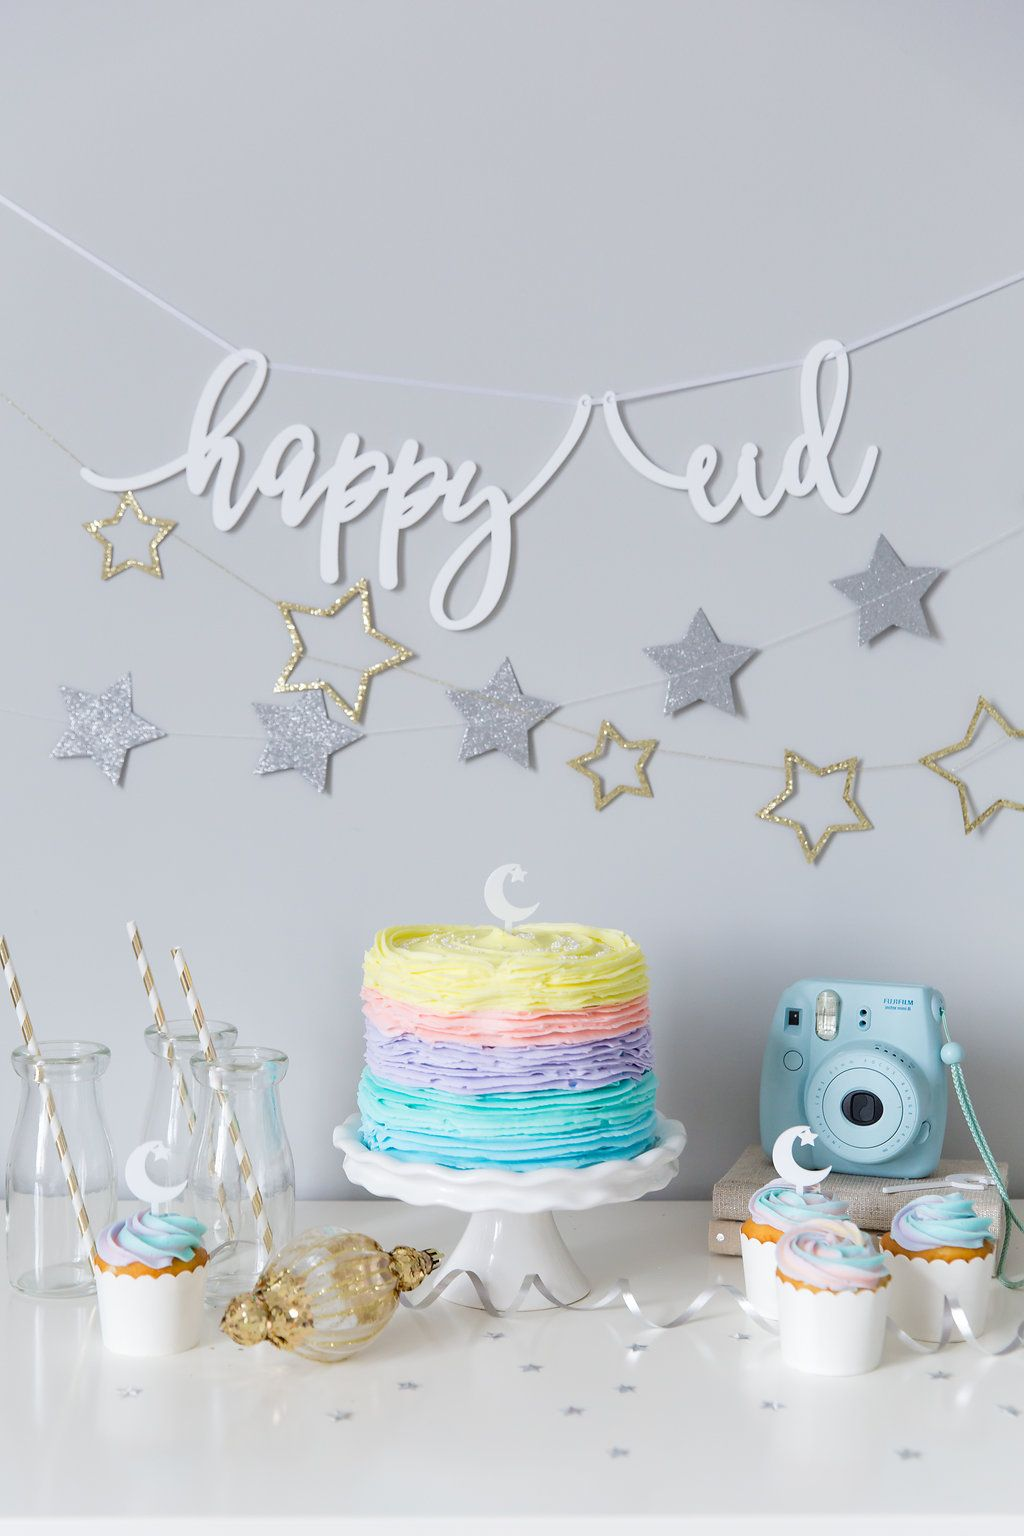 Wedding decorations muslim october 2018 THE ULTIMATE place for modern and trendy Ramadan u Eid decorations